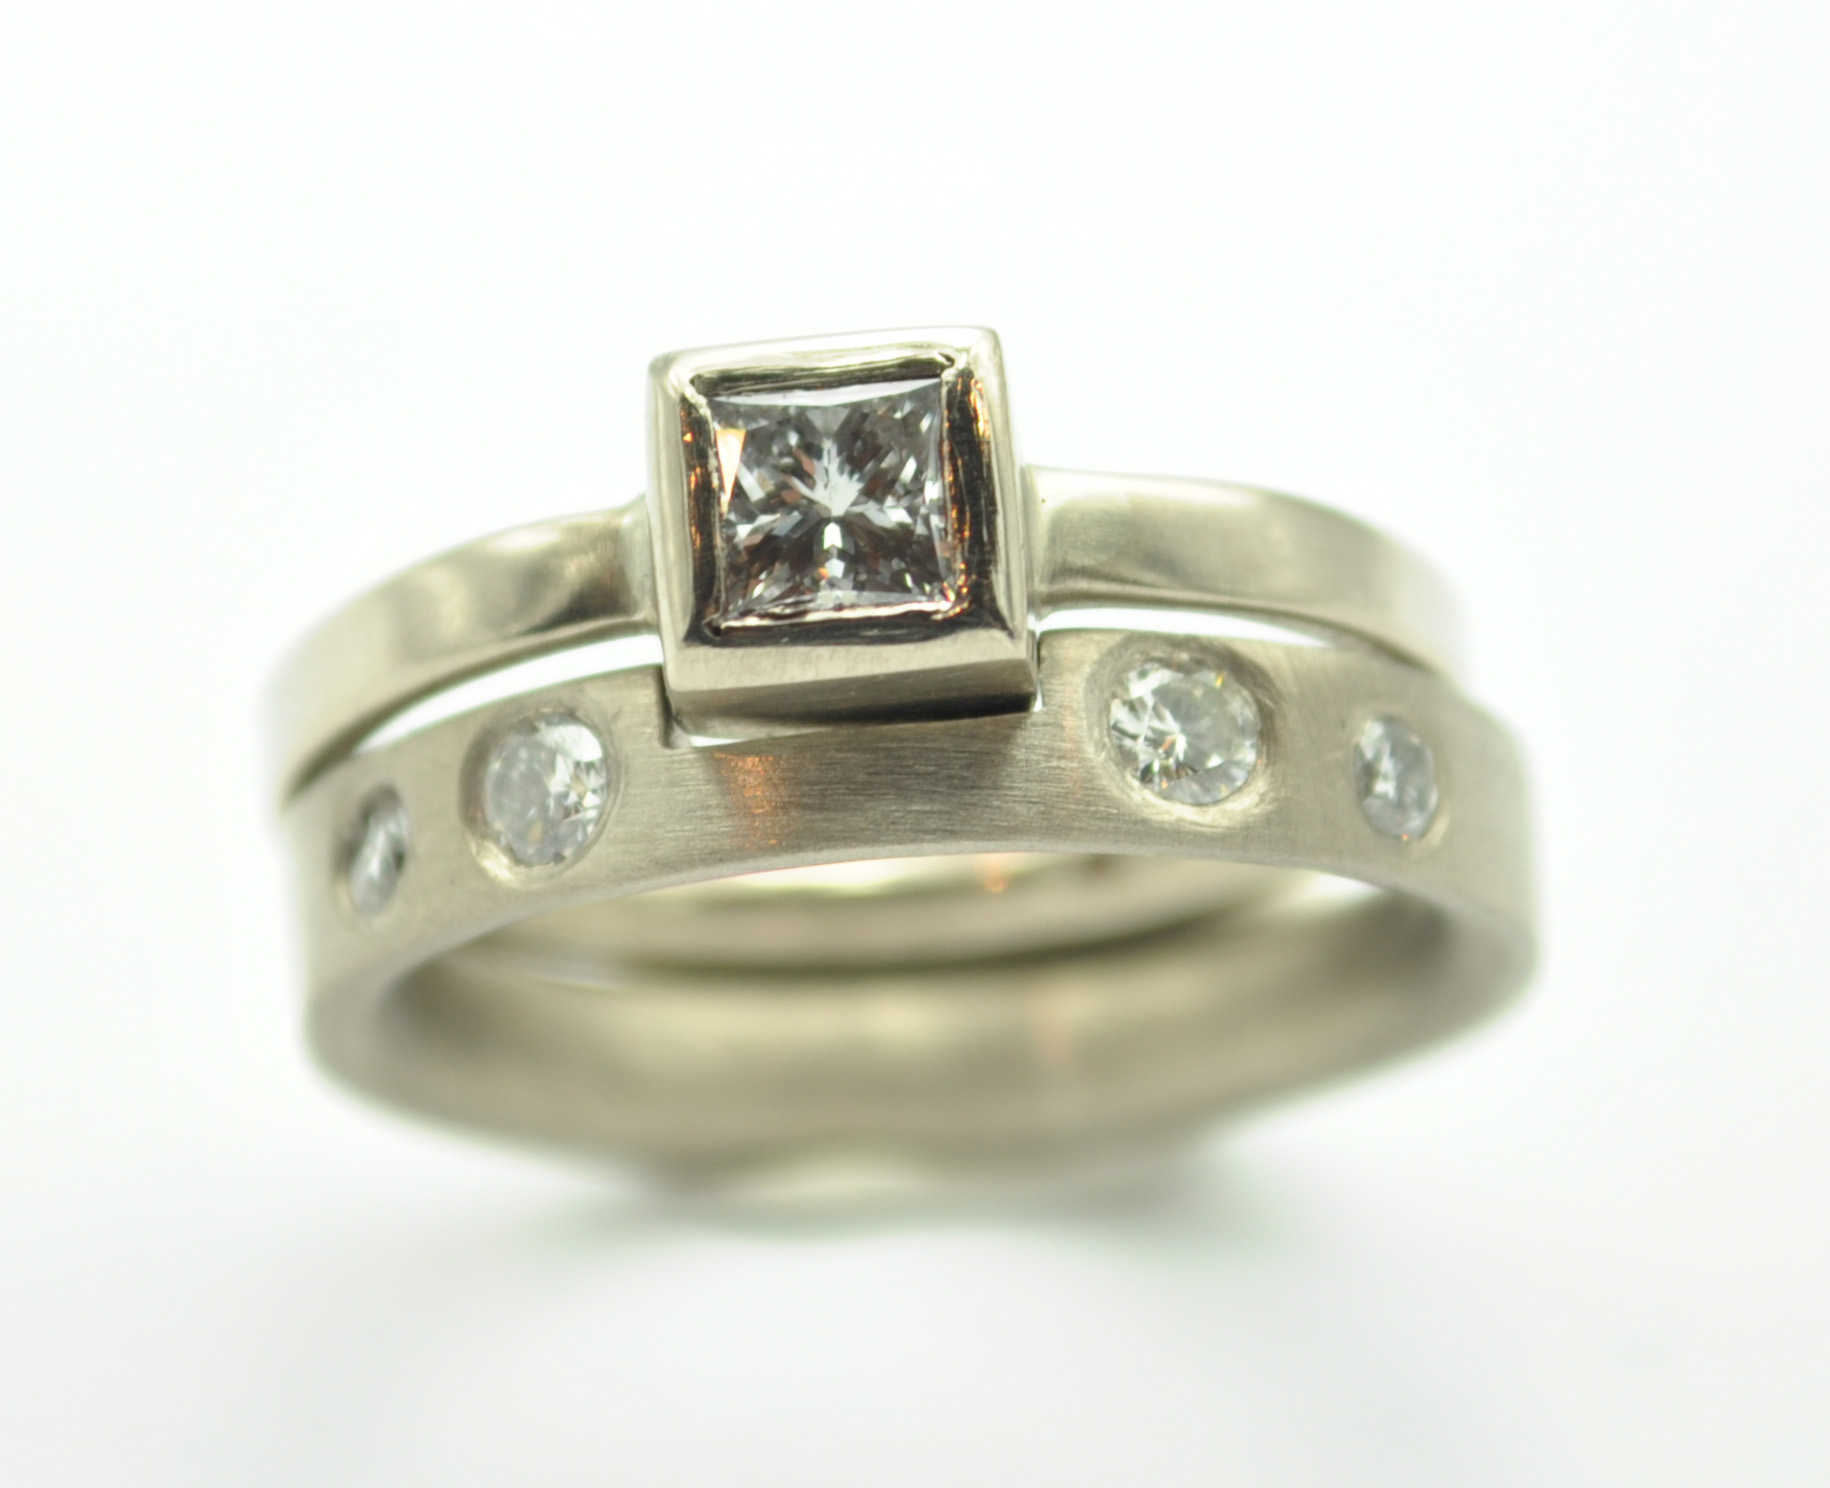 of rings love shopping engagement mins in choose fresh amp elegant ireland ring dublin gallery for perfect co wedding